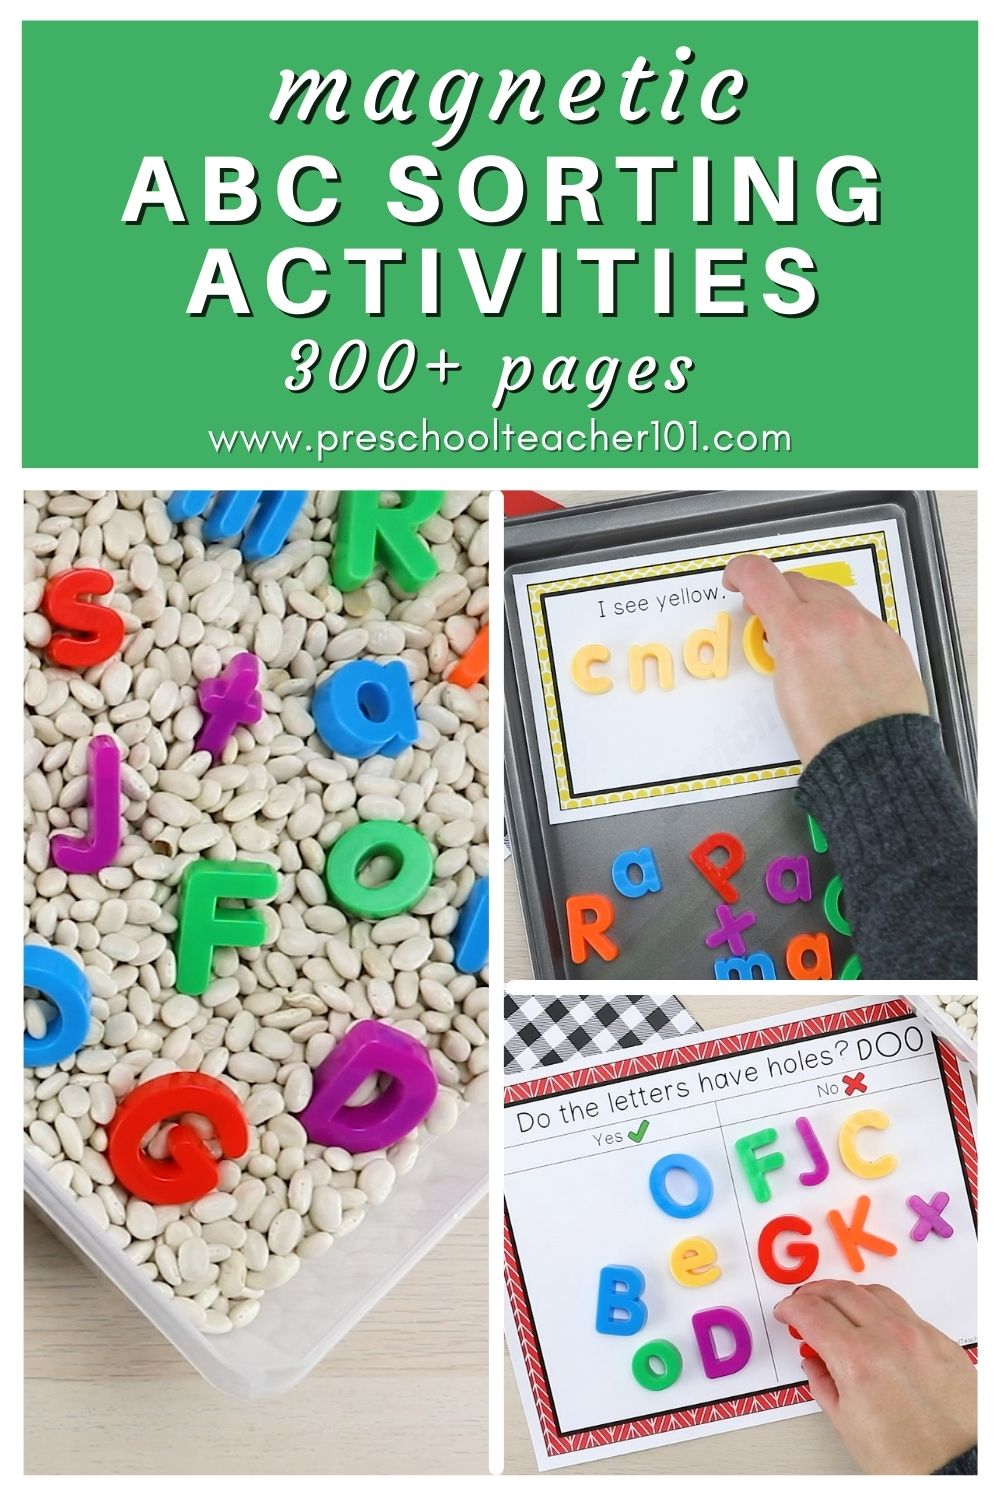 Magnetic ABC Activities